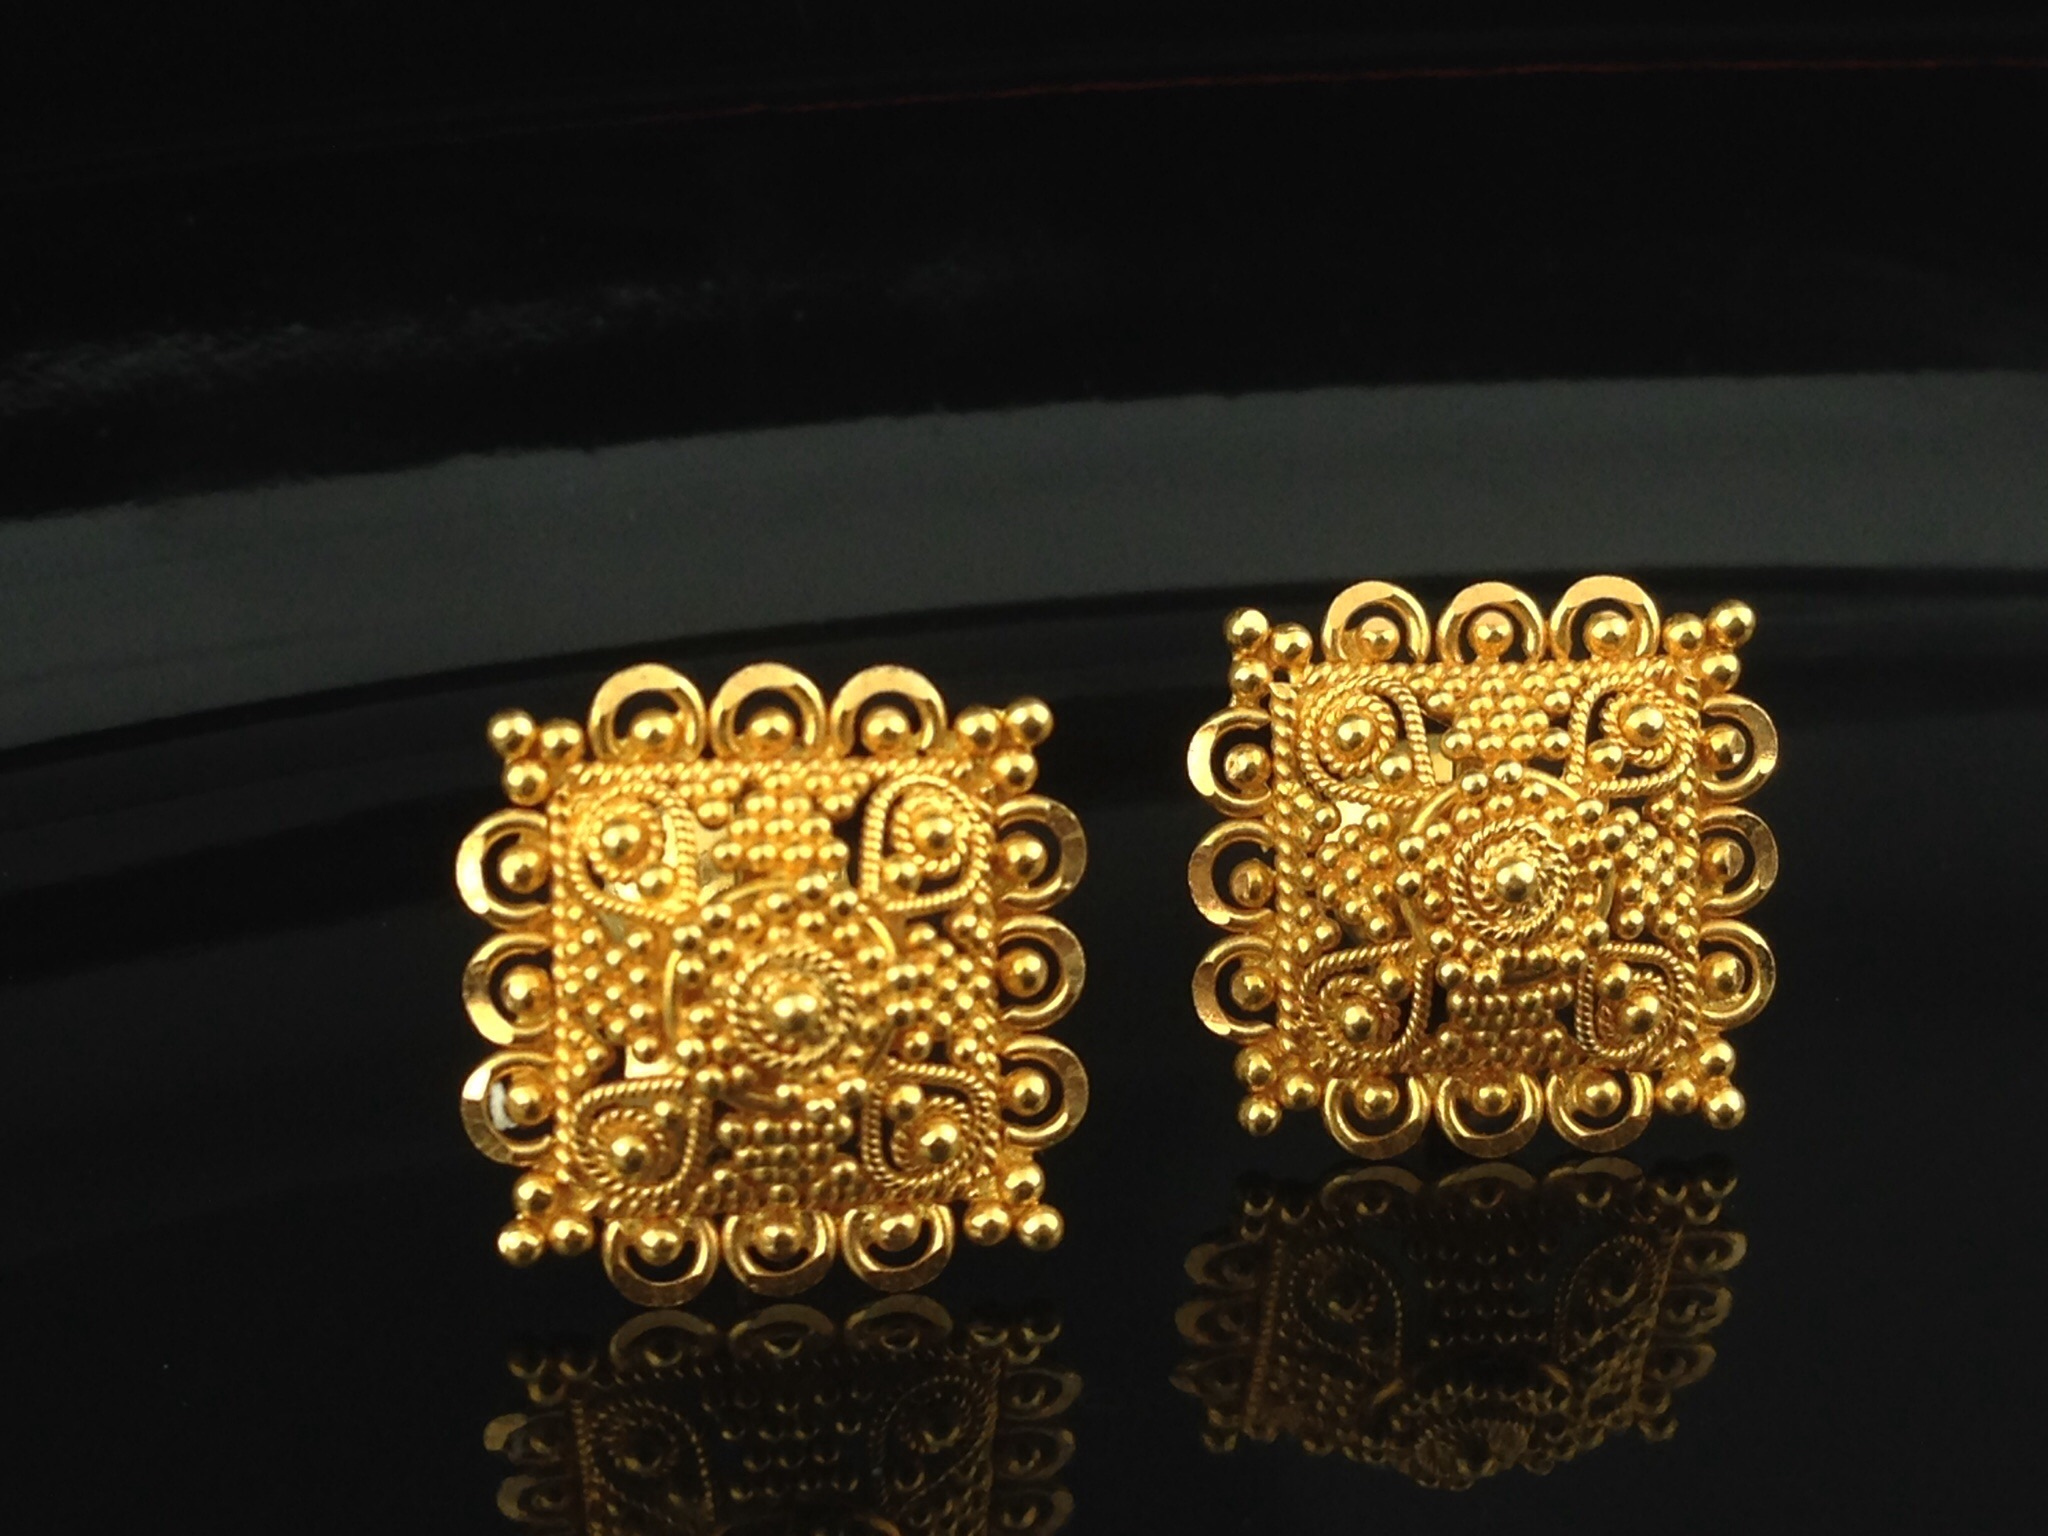 22k Gold Stud Earrings 4.5 Grams, Indian, Kundan, Islamic, and ...